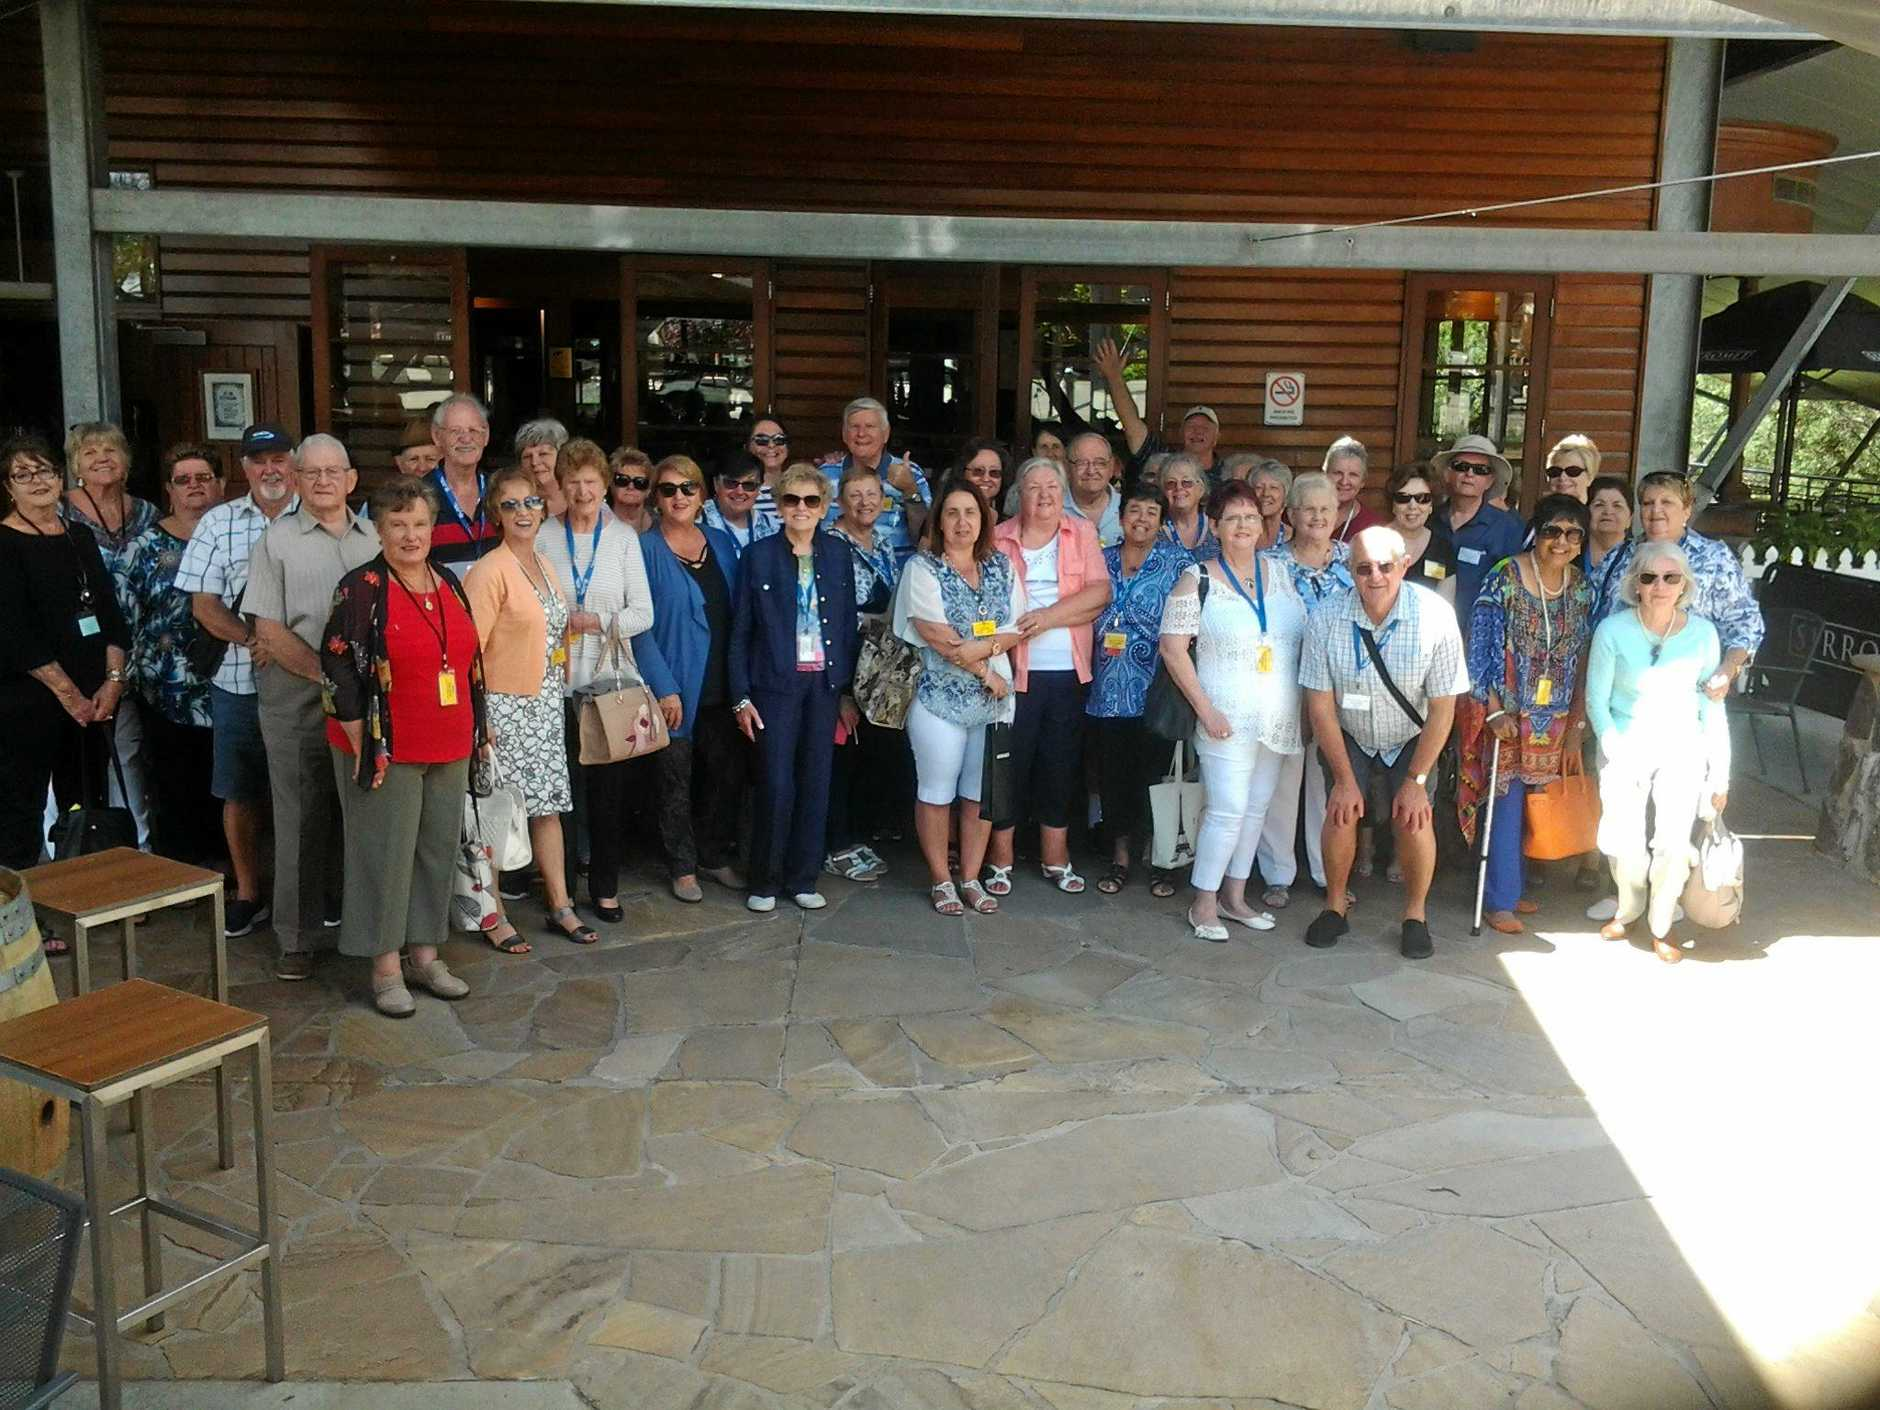 CHEERS AND SMILES: Some of the Forest Lake Fifty Plus Club members on a recent outing to the Sirromet Winery.